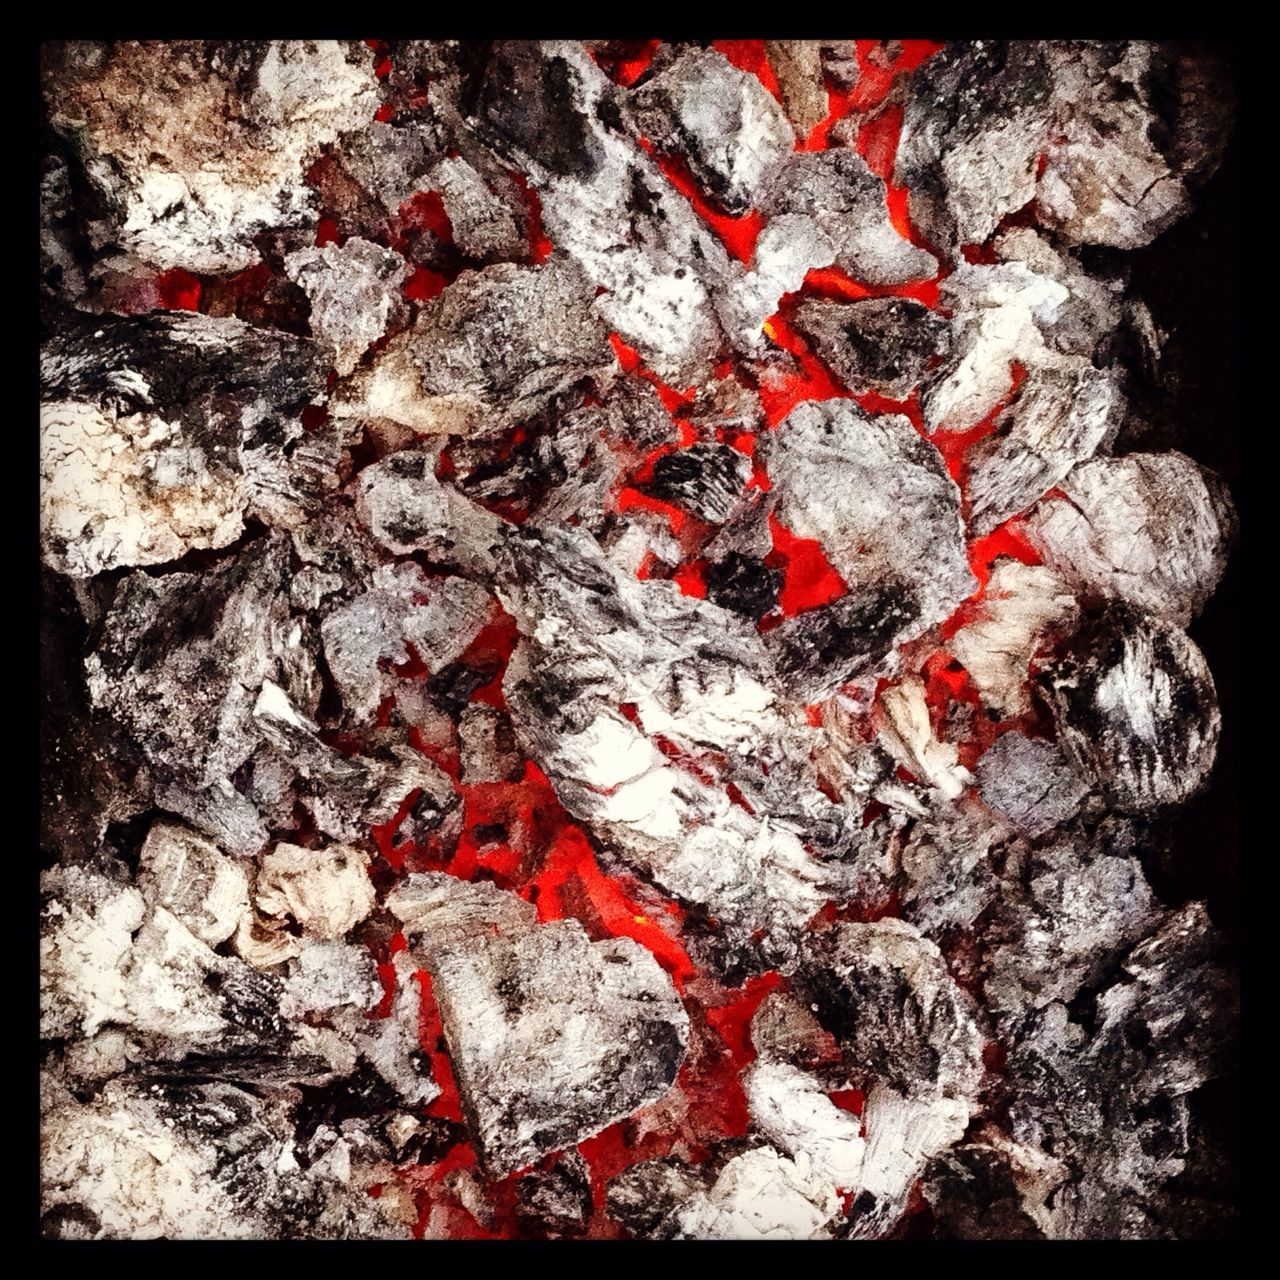 Close-up of red hot charcoal